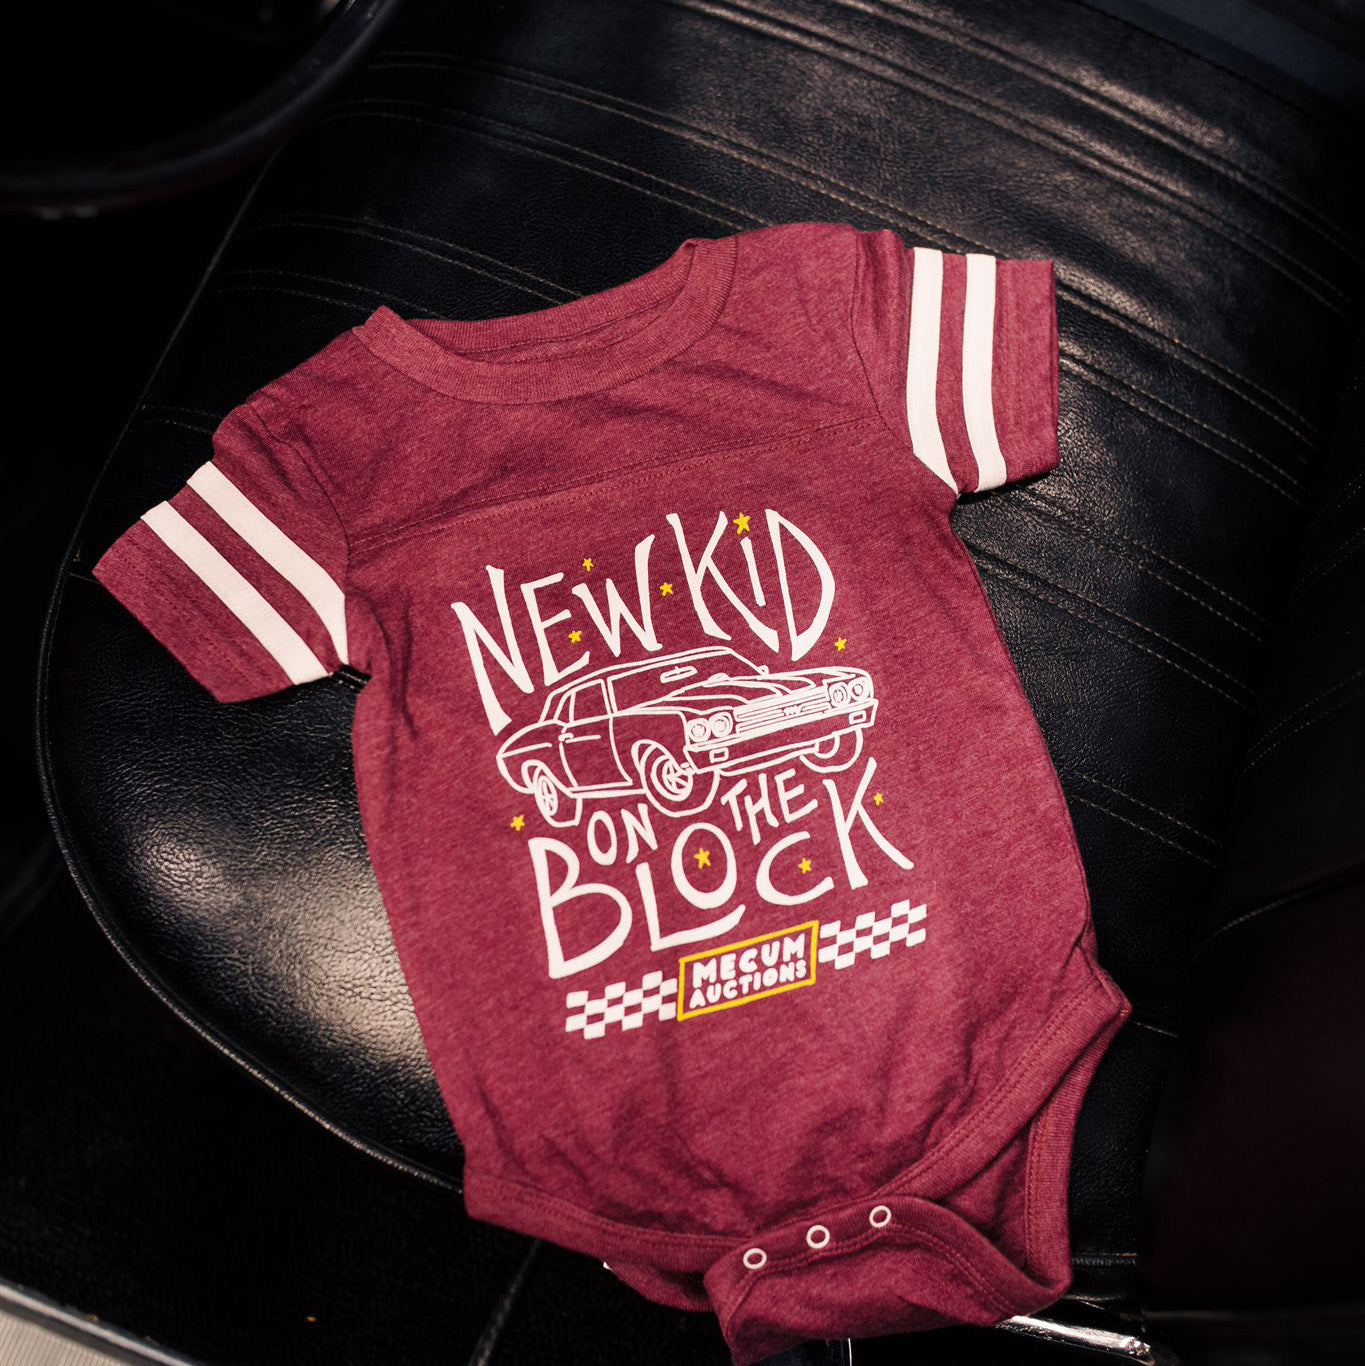 mecum auctions 2020 new kid on the block onesie on car seat